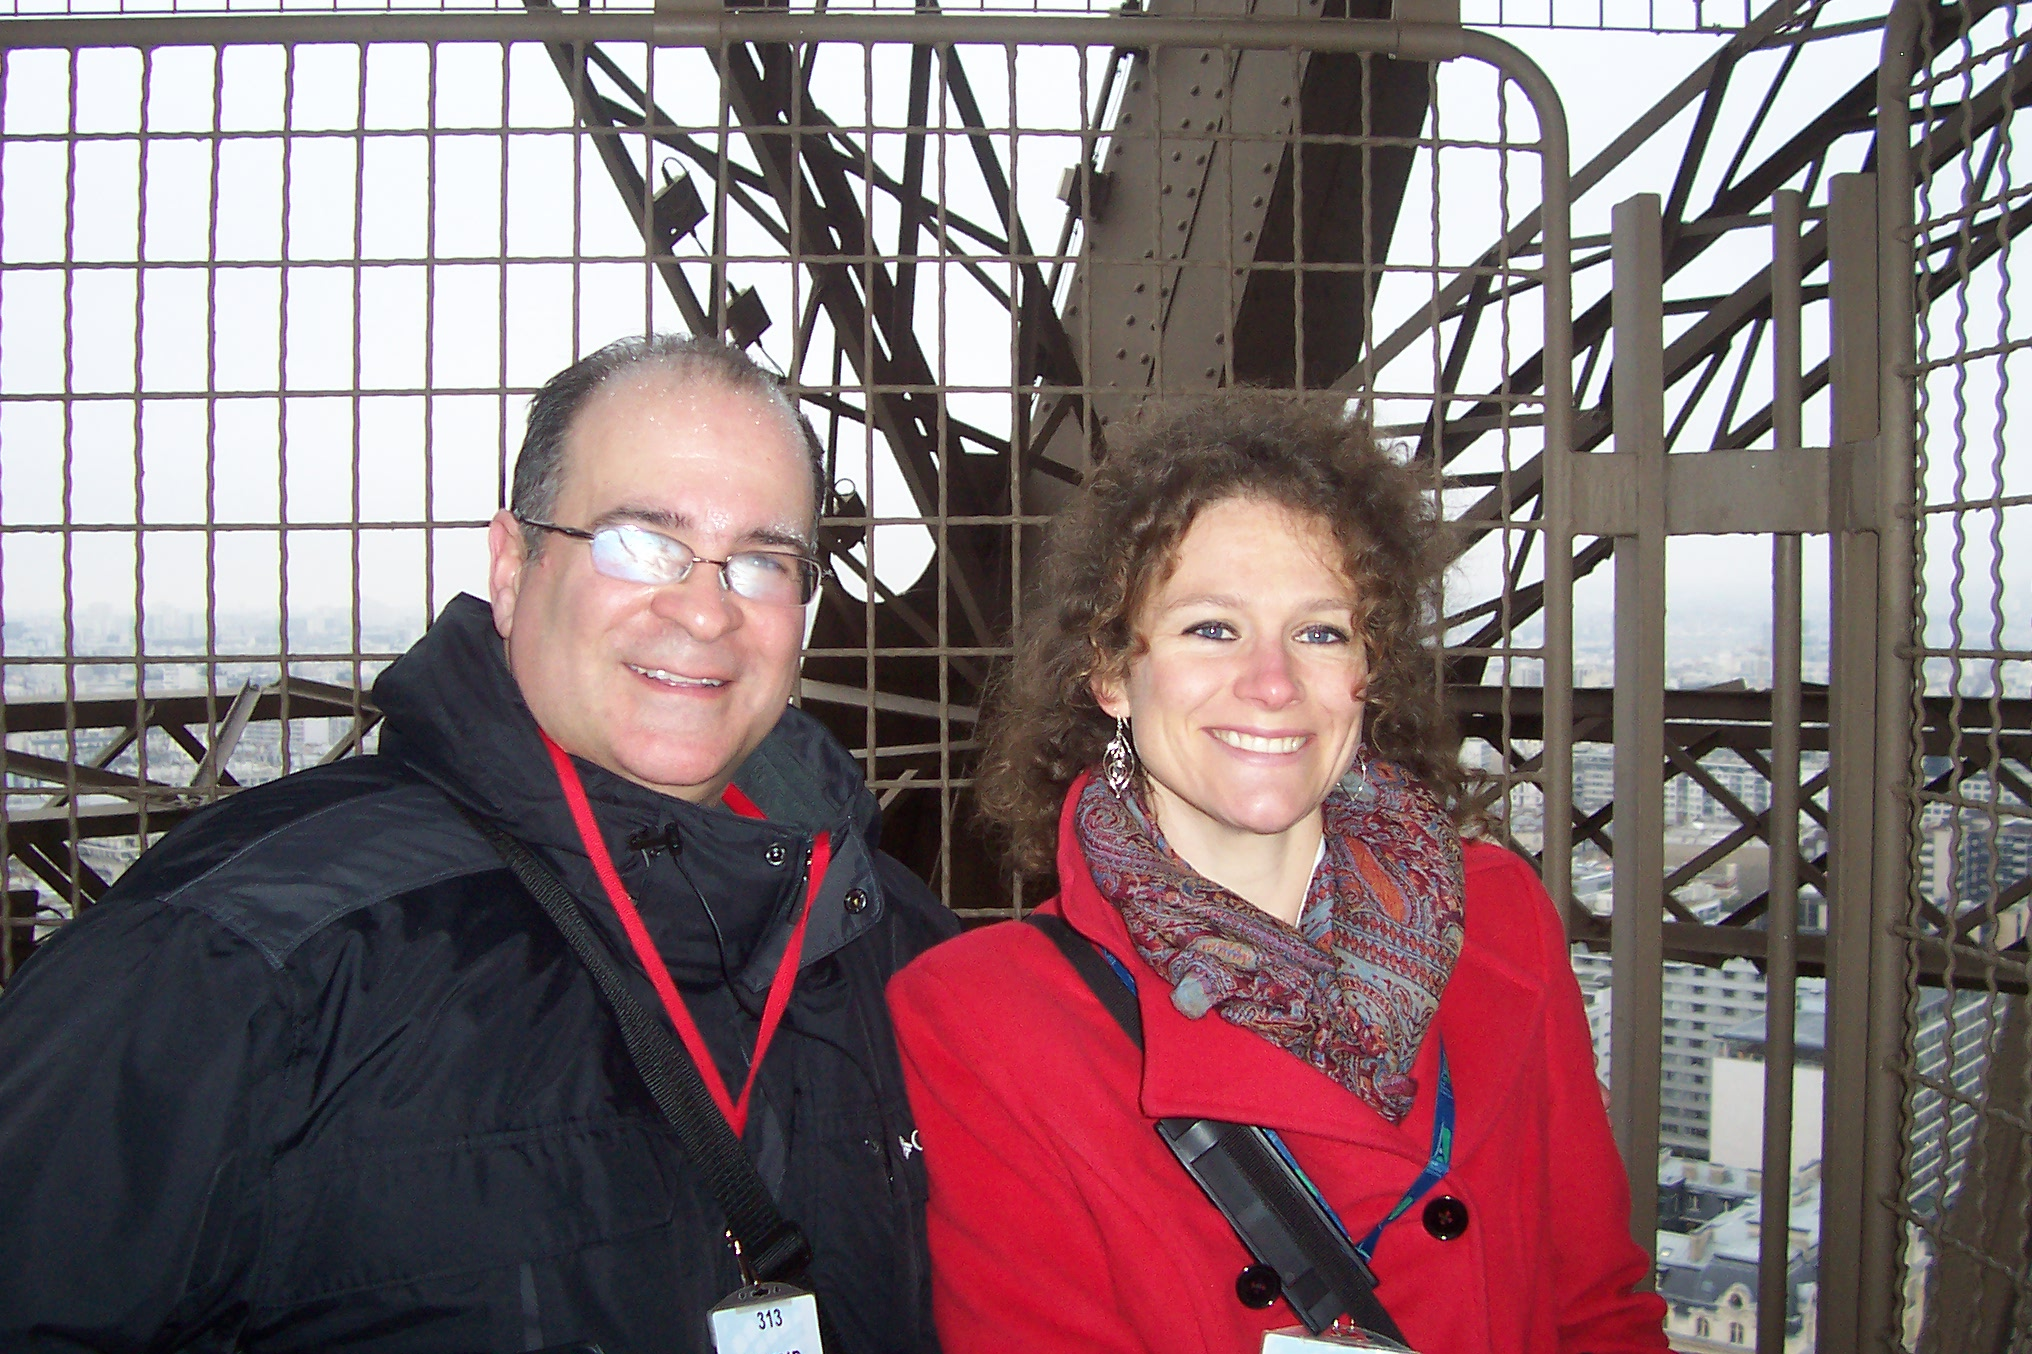 Joseph Bertolozzi & Marthe Ozbolt, Jan 8, 2013 at the summit of the Eiffel Tower